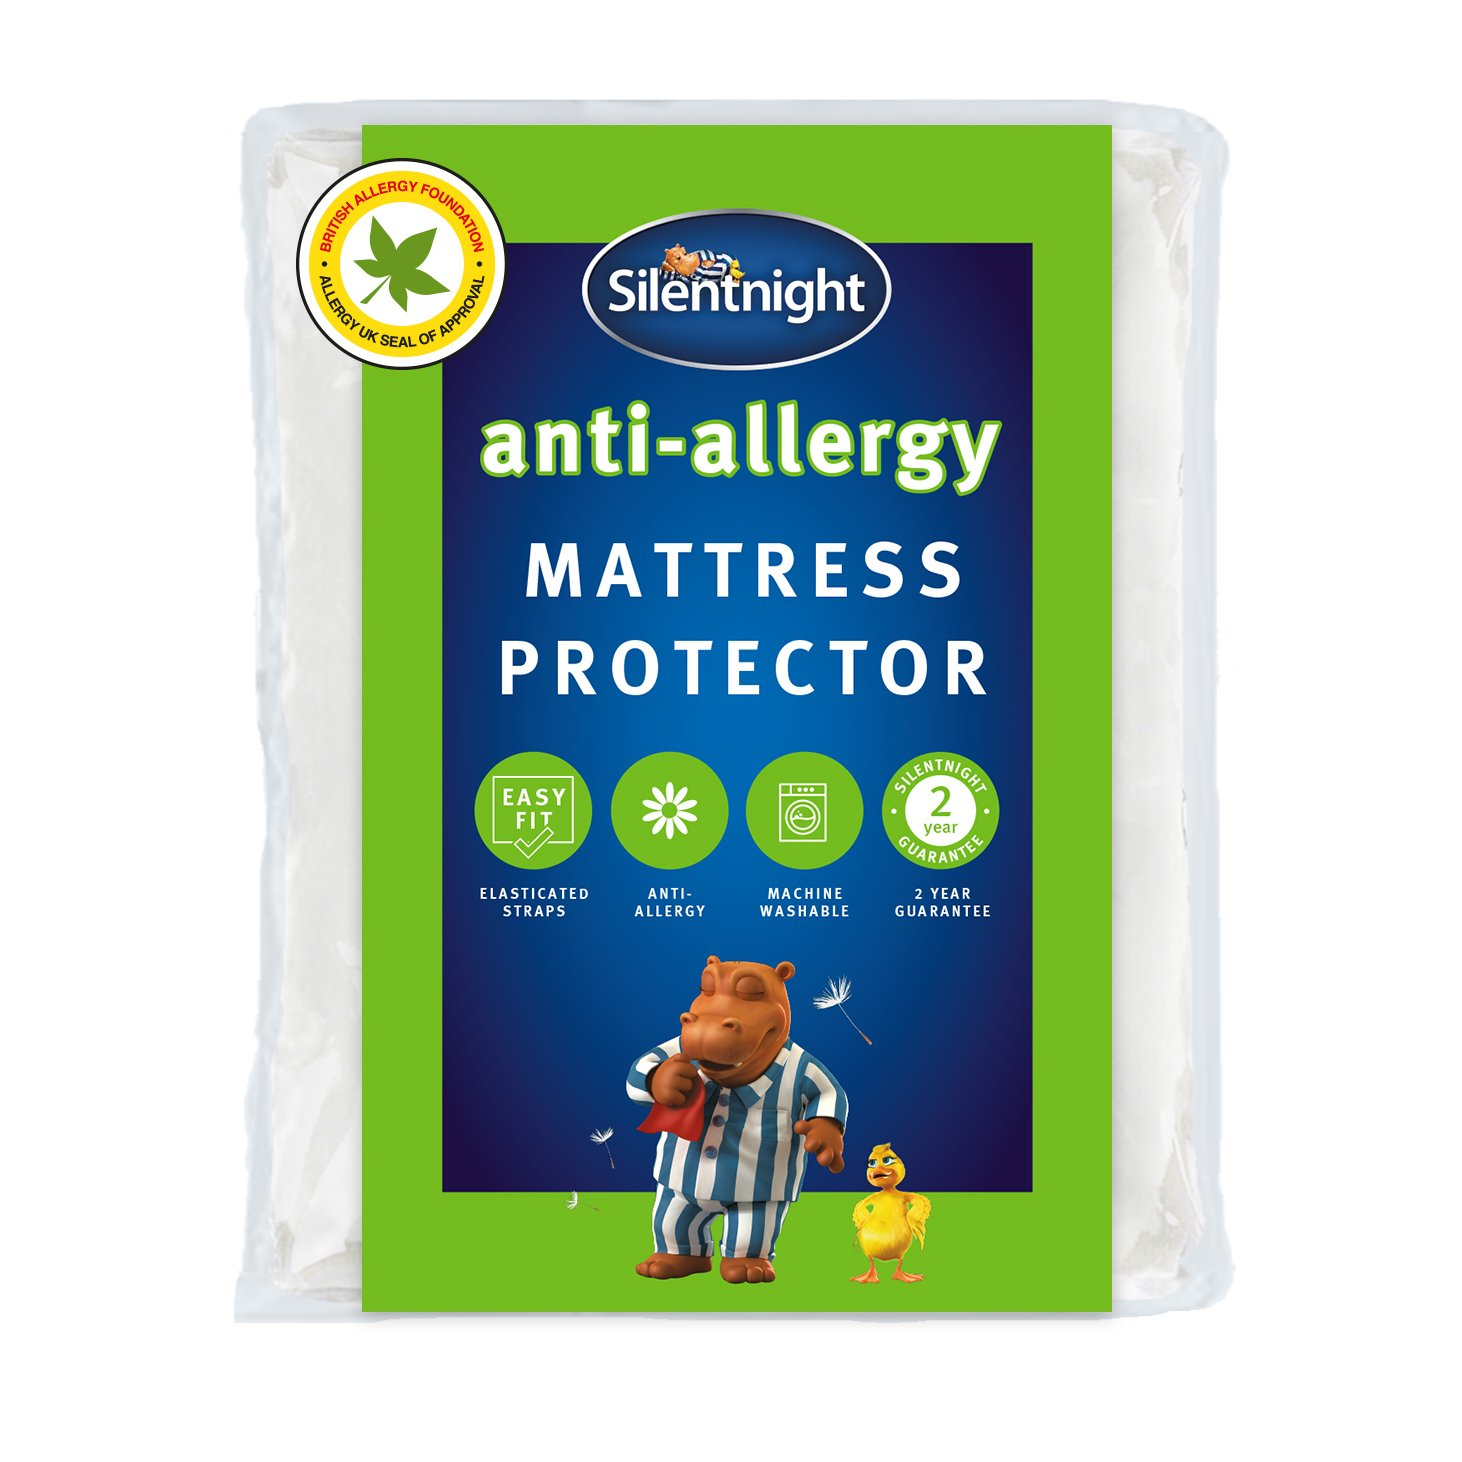 Silentnight Anti-Allergy Mattress Protector - Single